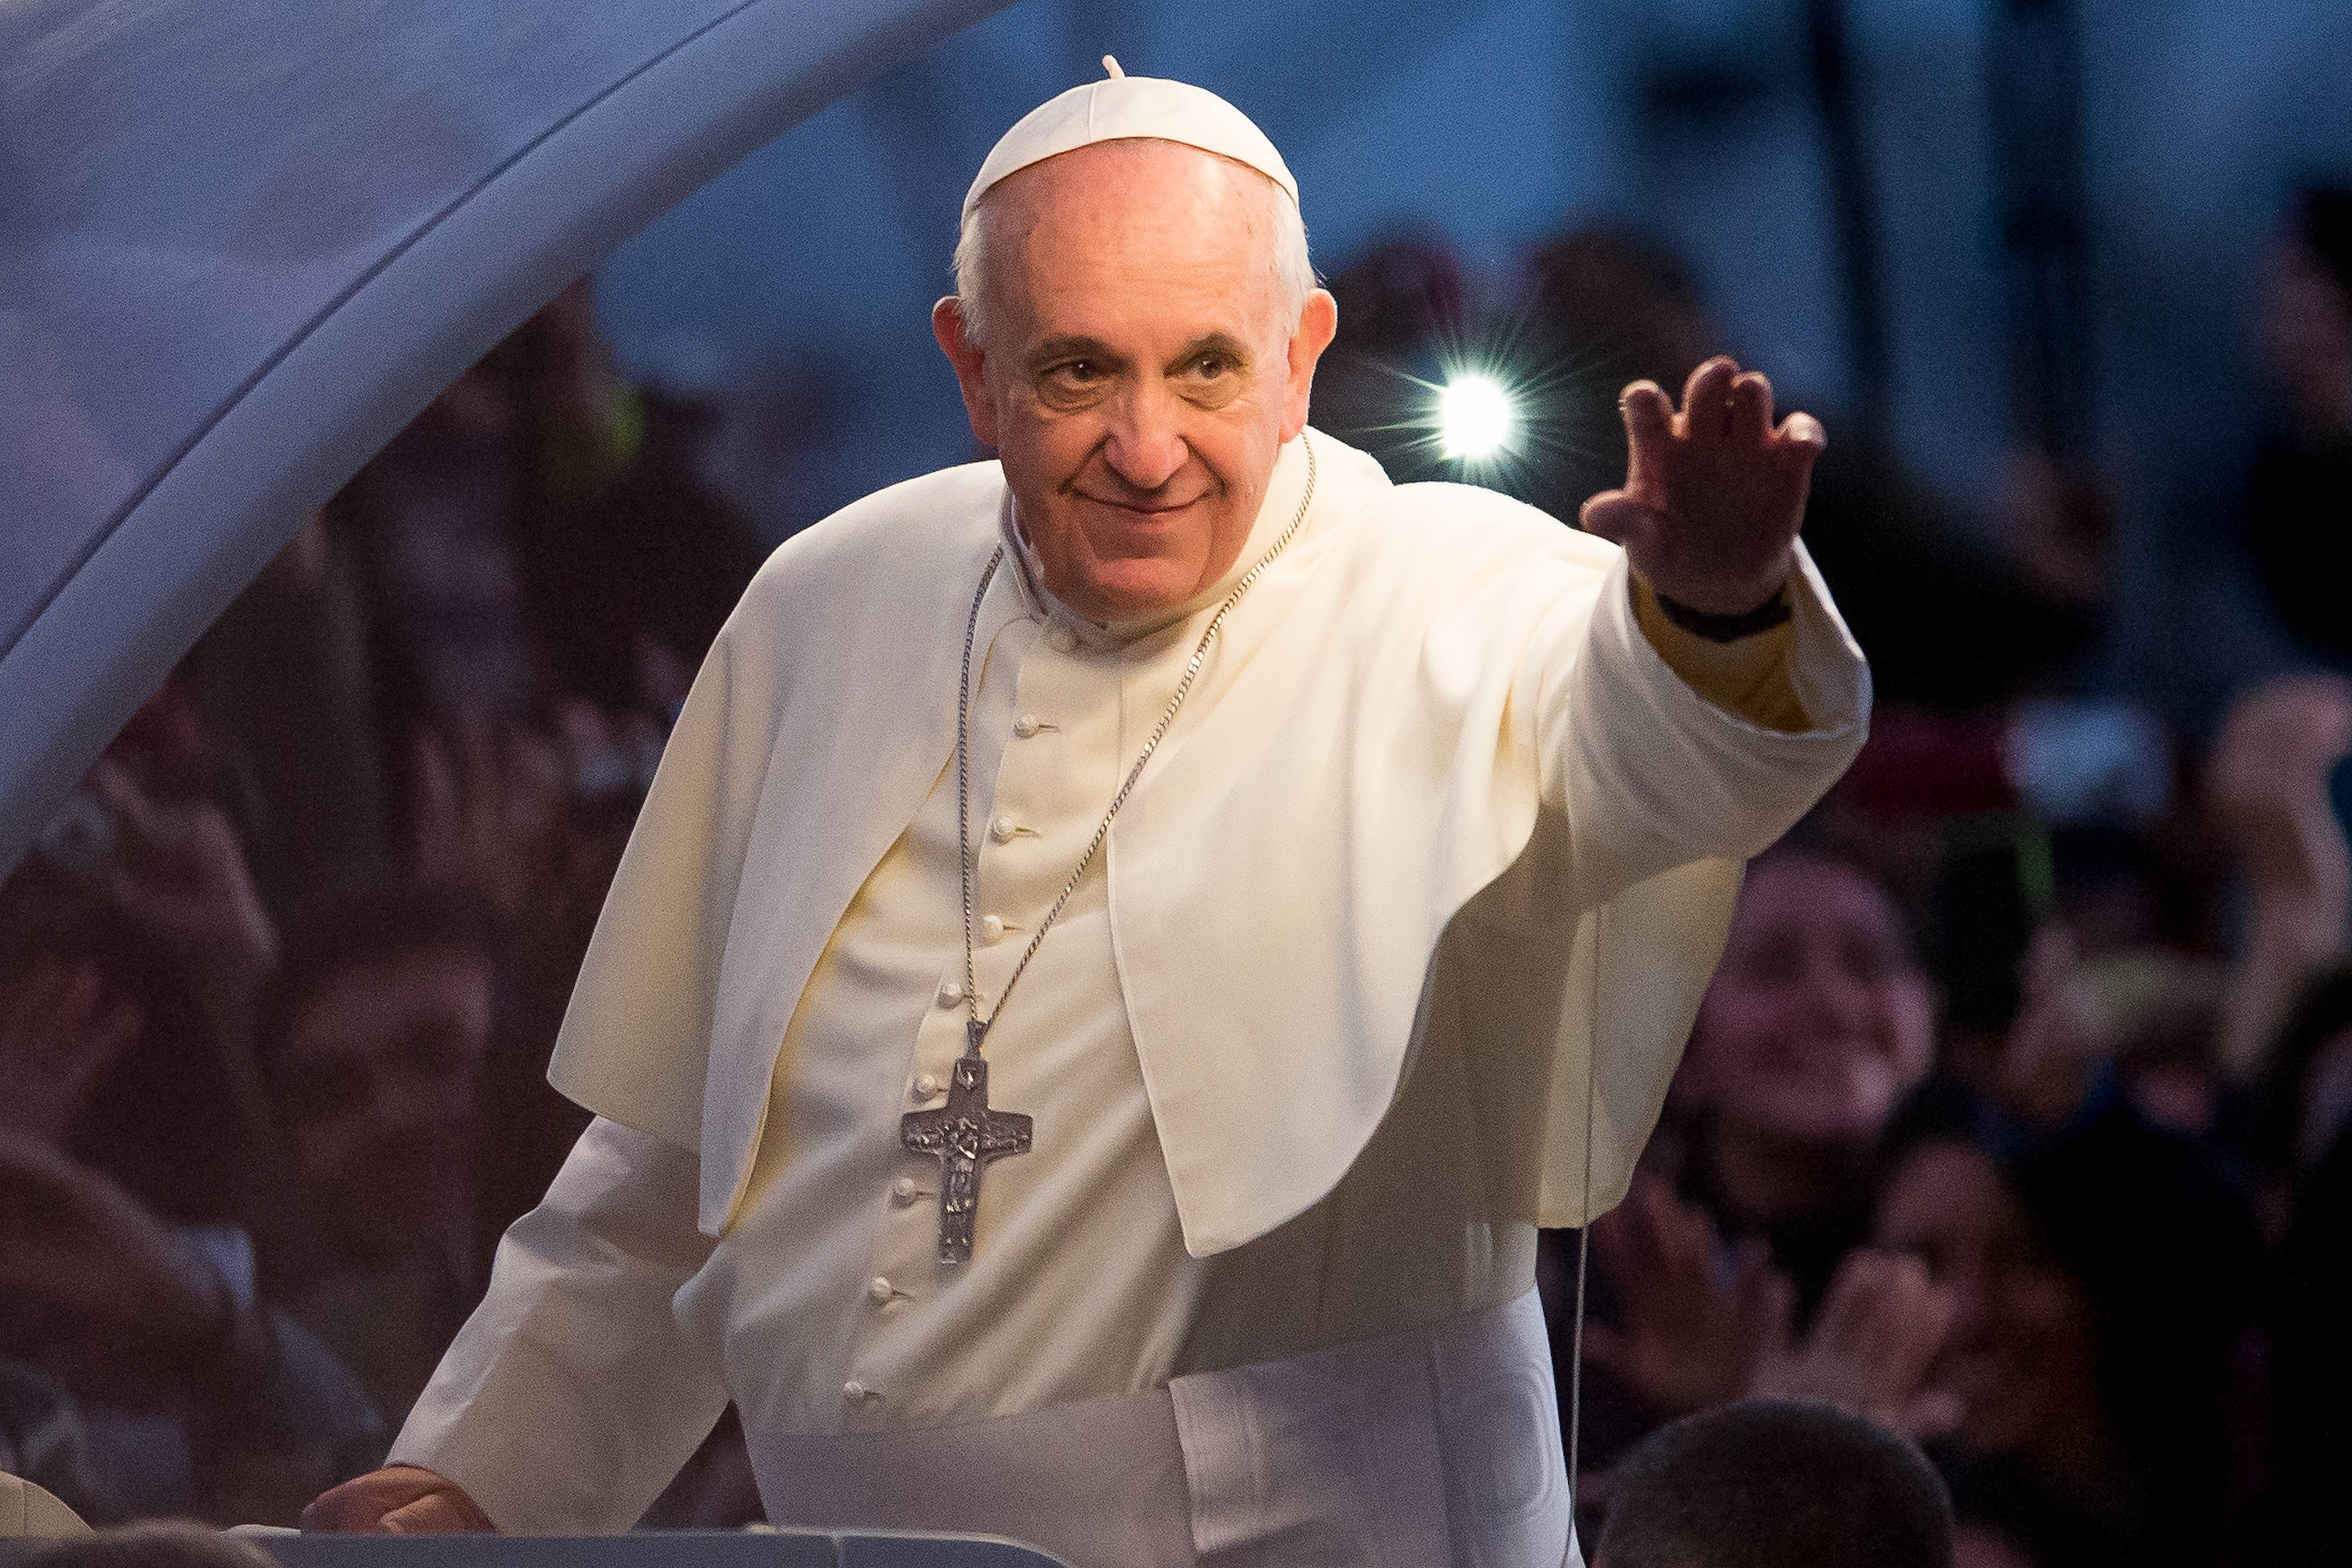 Pope Francis waves from the Popemobile on his way to attend the Via Crucis on Copacabana Beach during World Youth Day celebrations in Rio de Janeiro on July 26, 2013